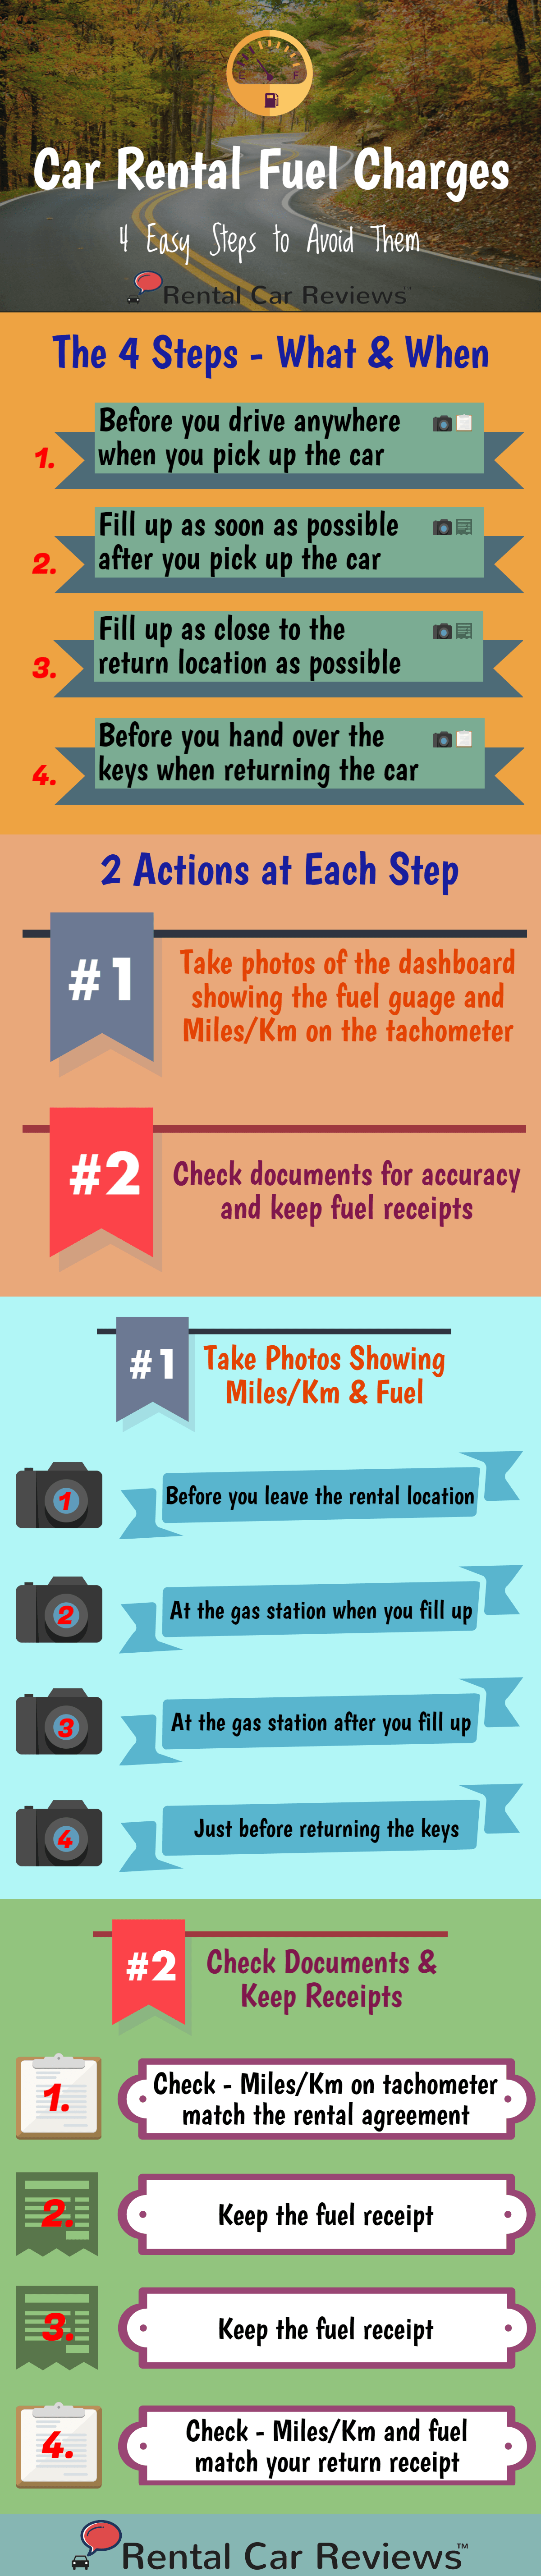 4-Easy-Steps-to-Avoid-Car-Rental-Fuel-Charges-INFOGRAPHIC_20160221-023214_1.png